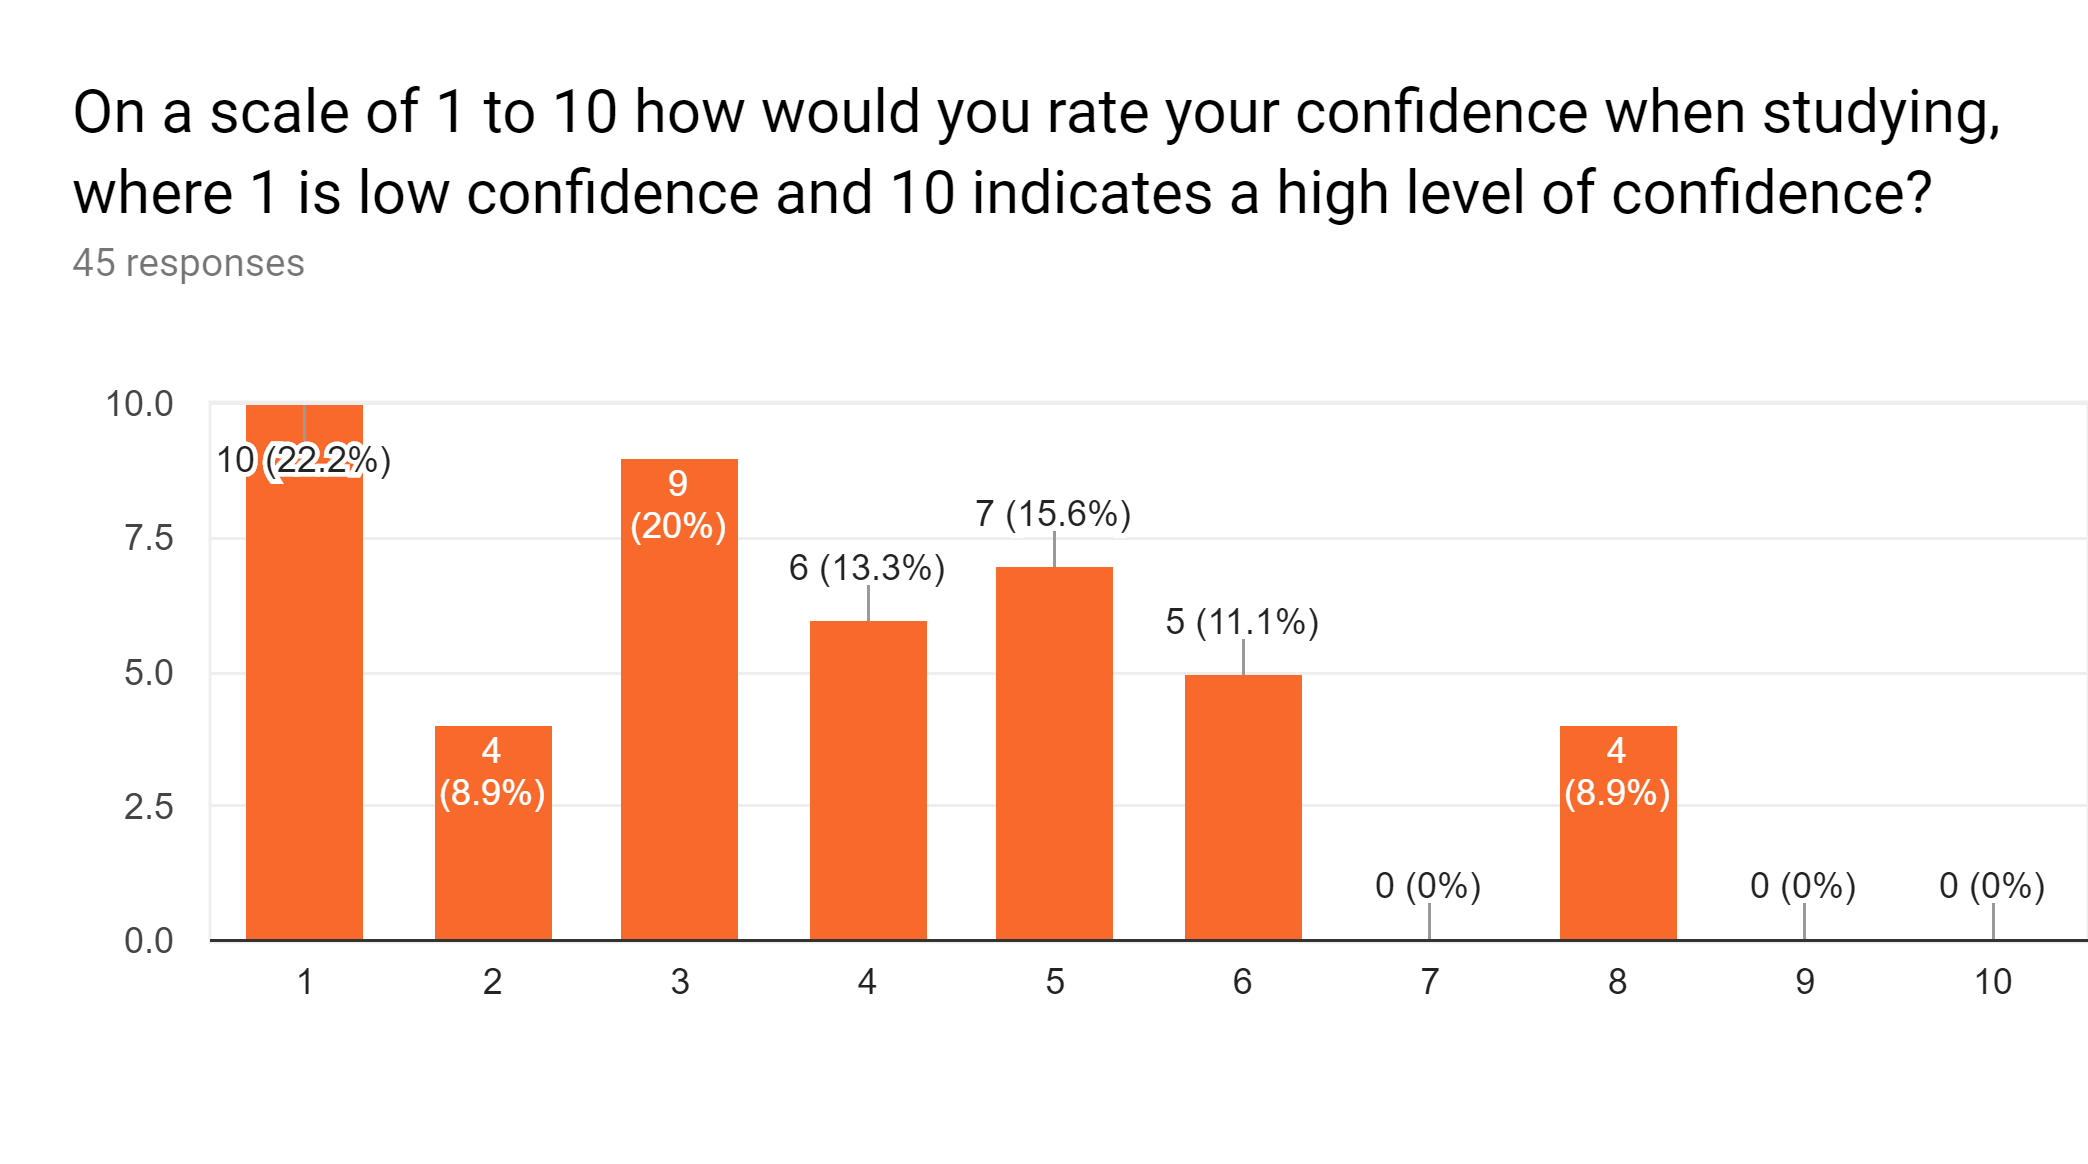 Low levels of confidence reported with scores between one and six.